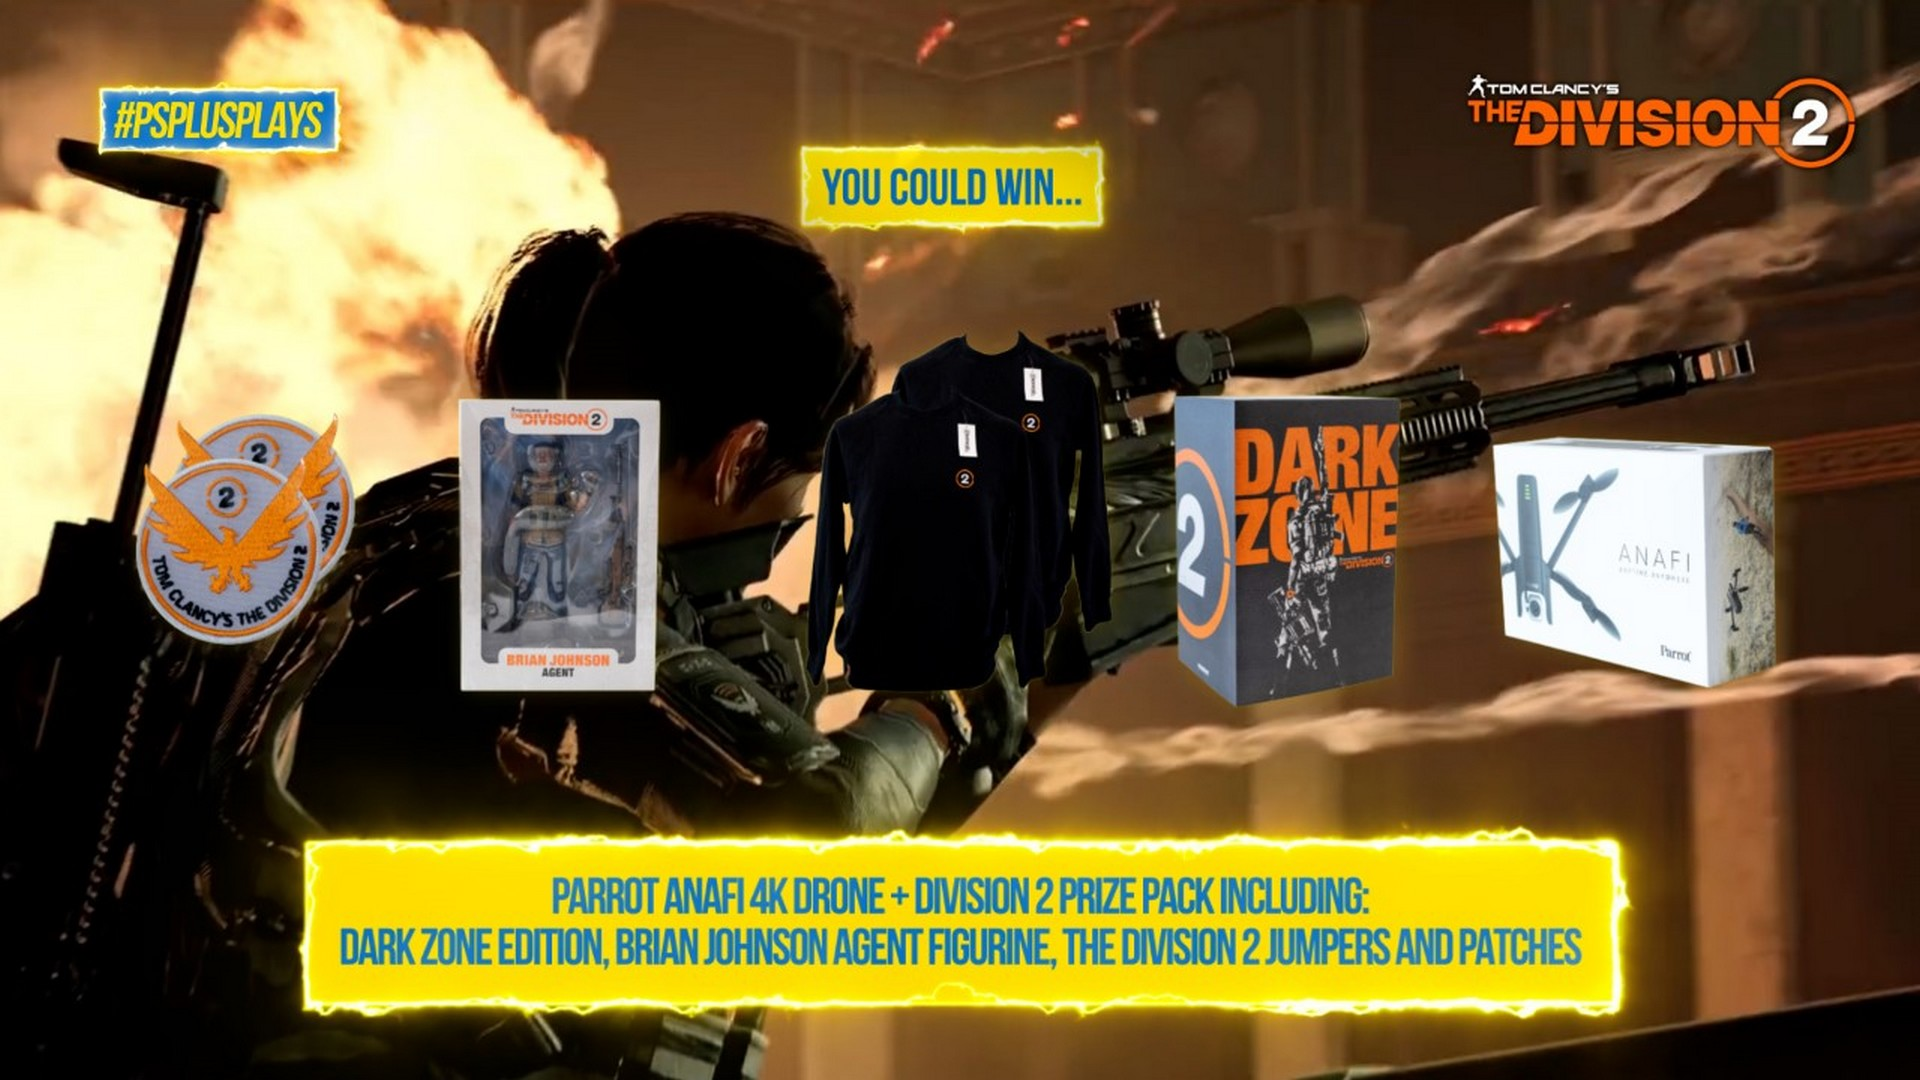 PlayStation Australia Announces #PSPlusPlays Challenge For August With Tom Clancy's The Division 2